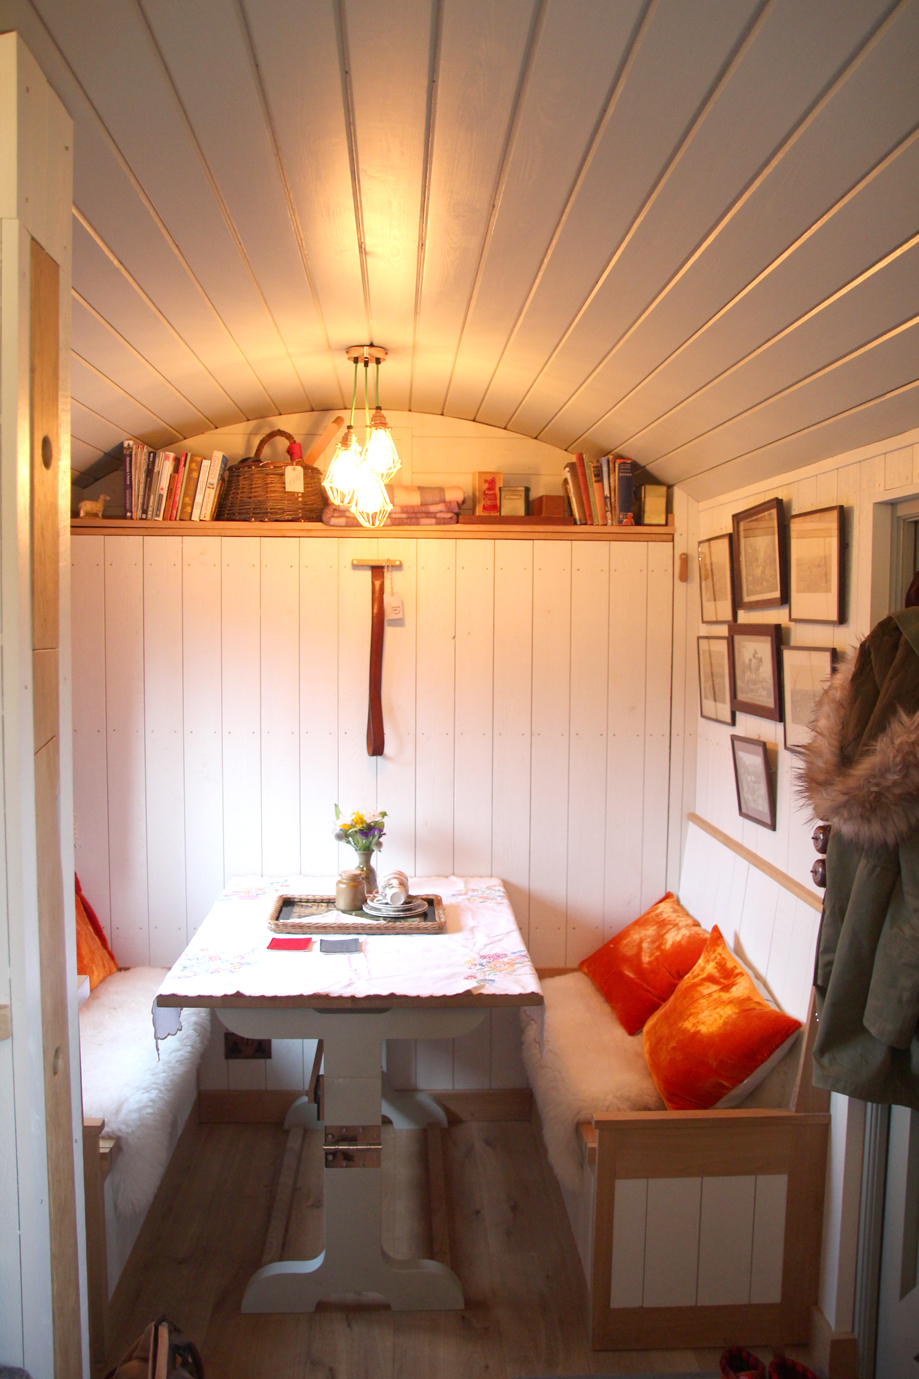 Dimpsey Shepherds Hut